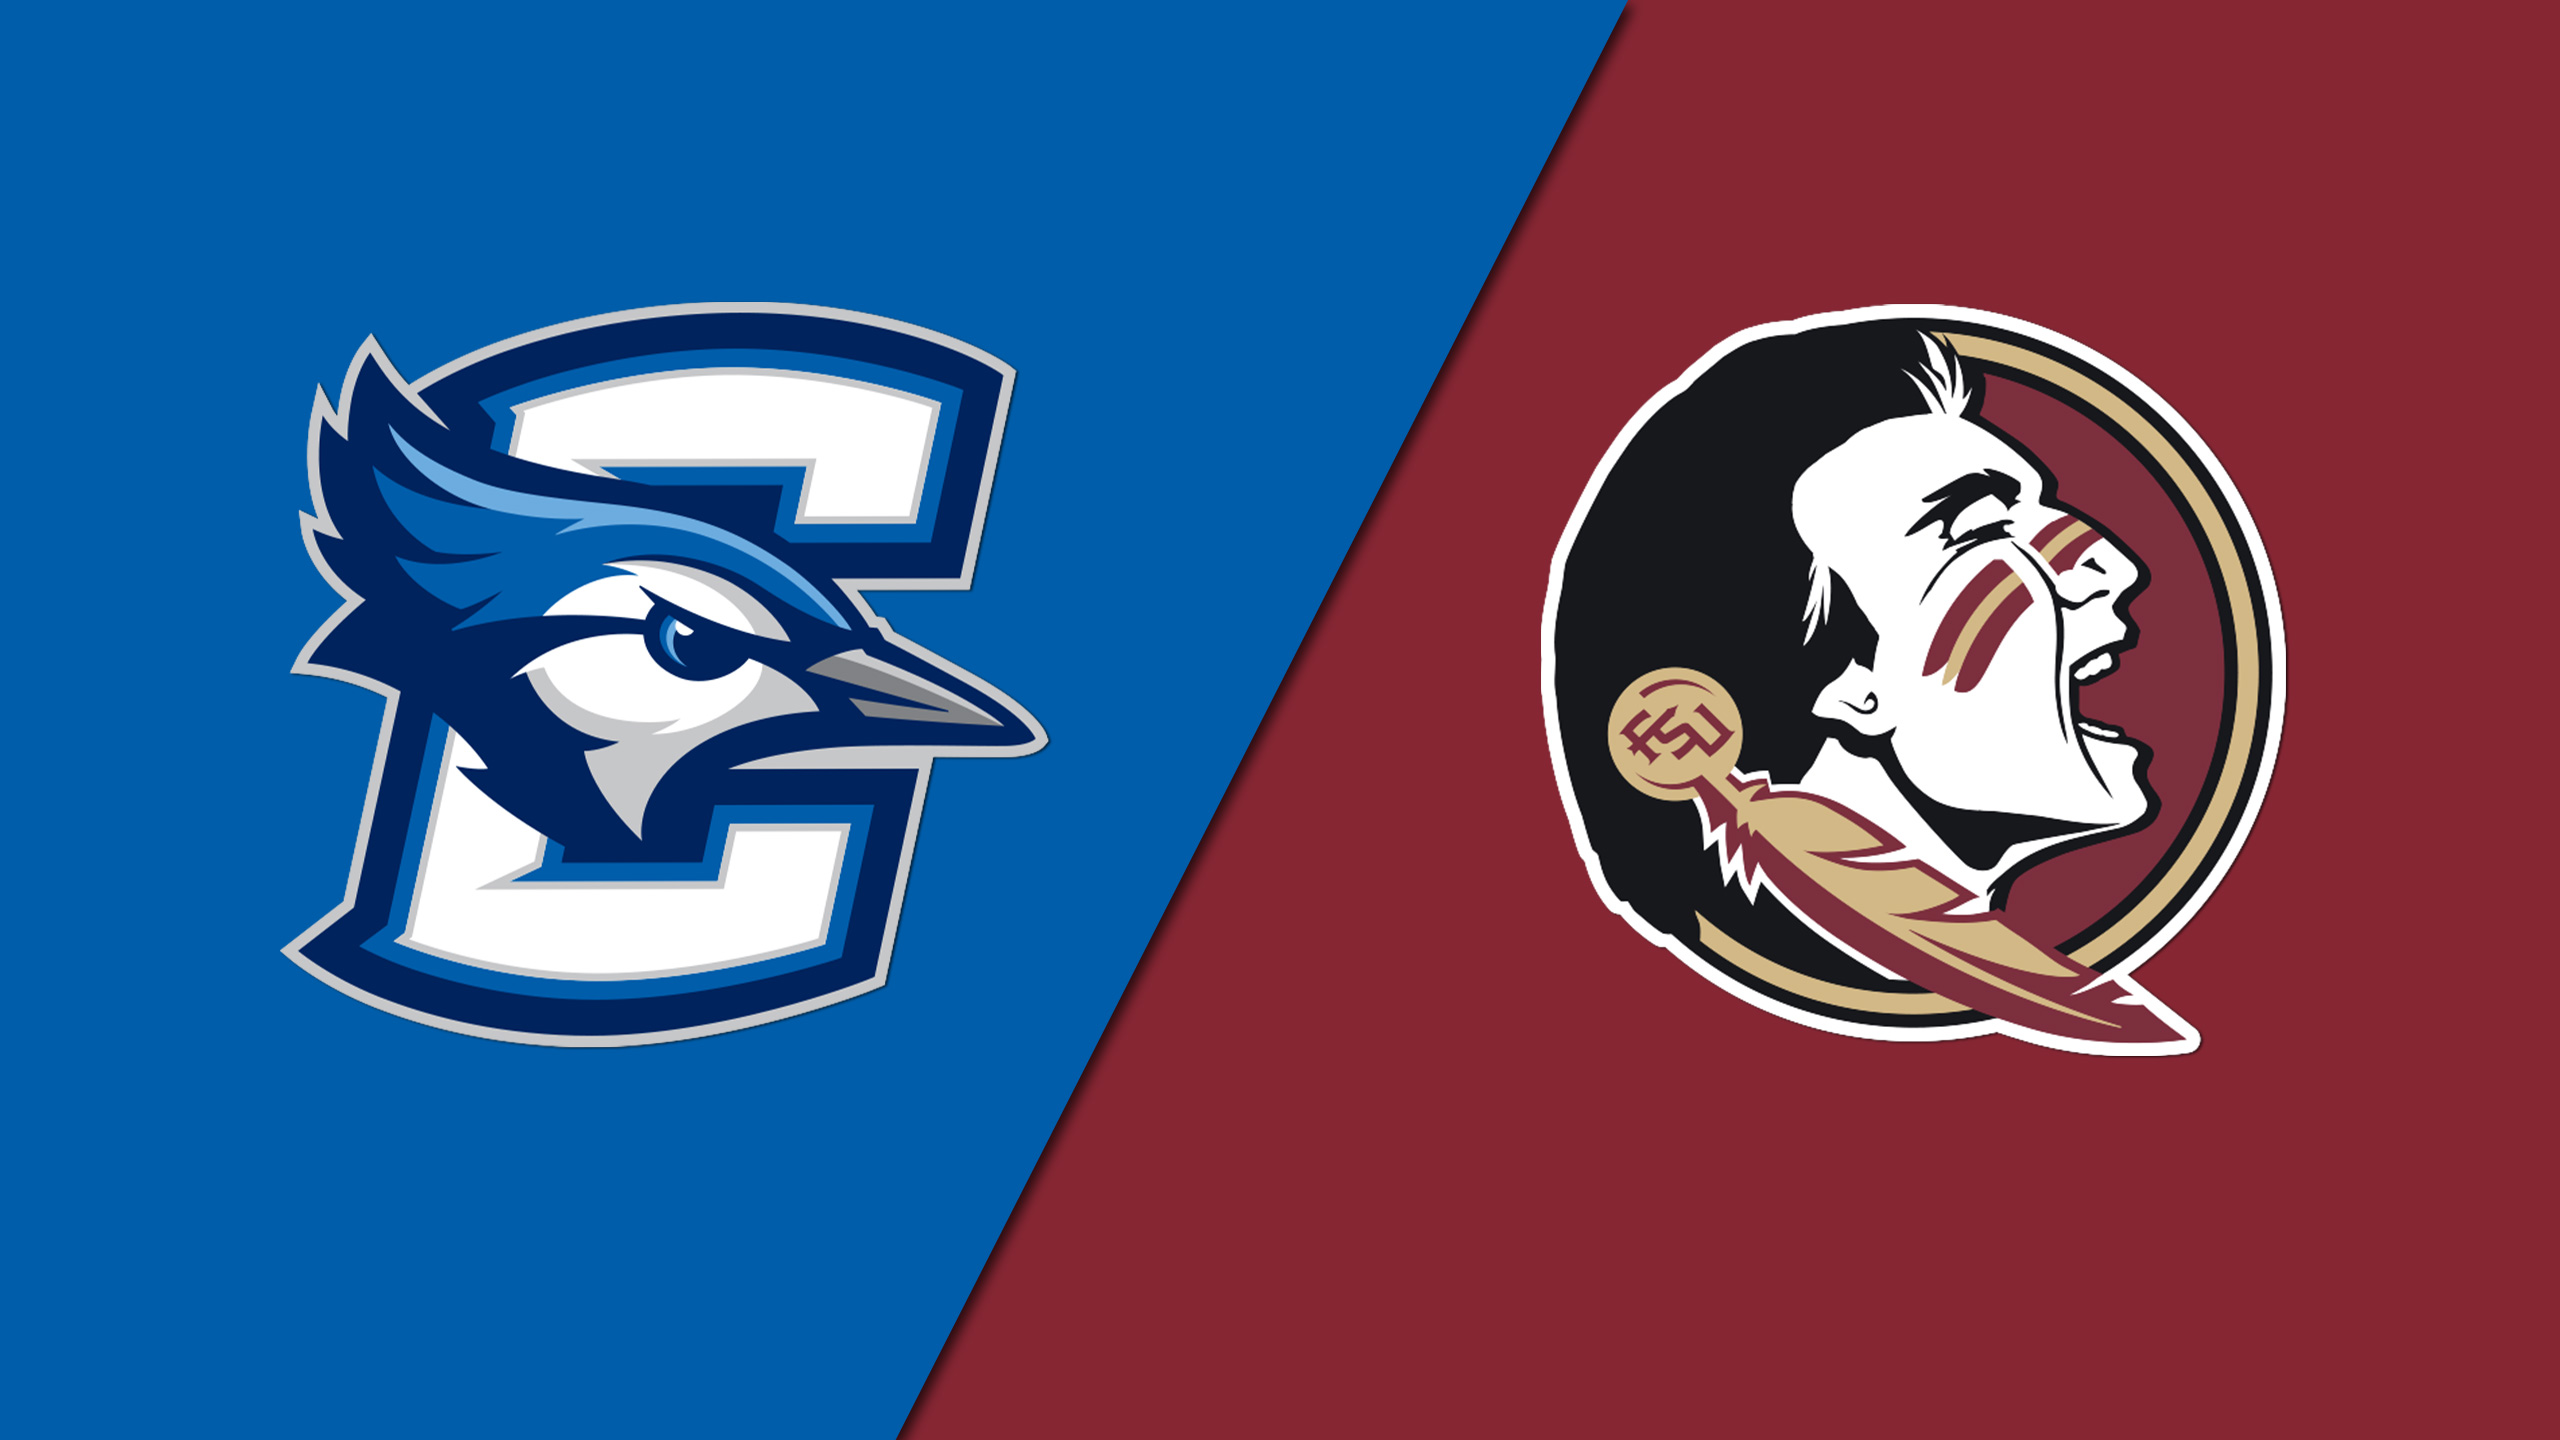 Creighton vs. Florida State (W Basketball)